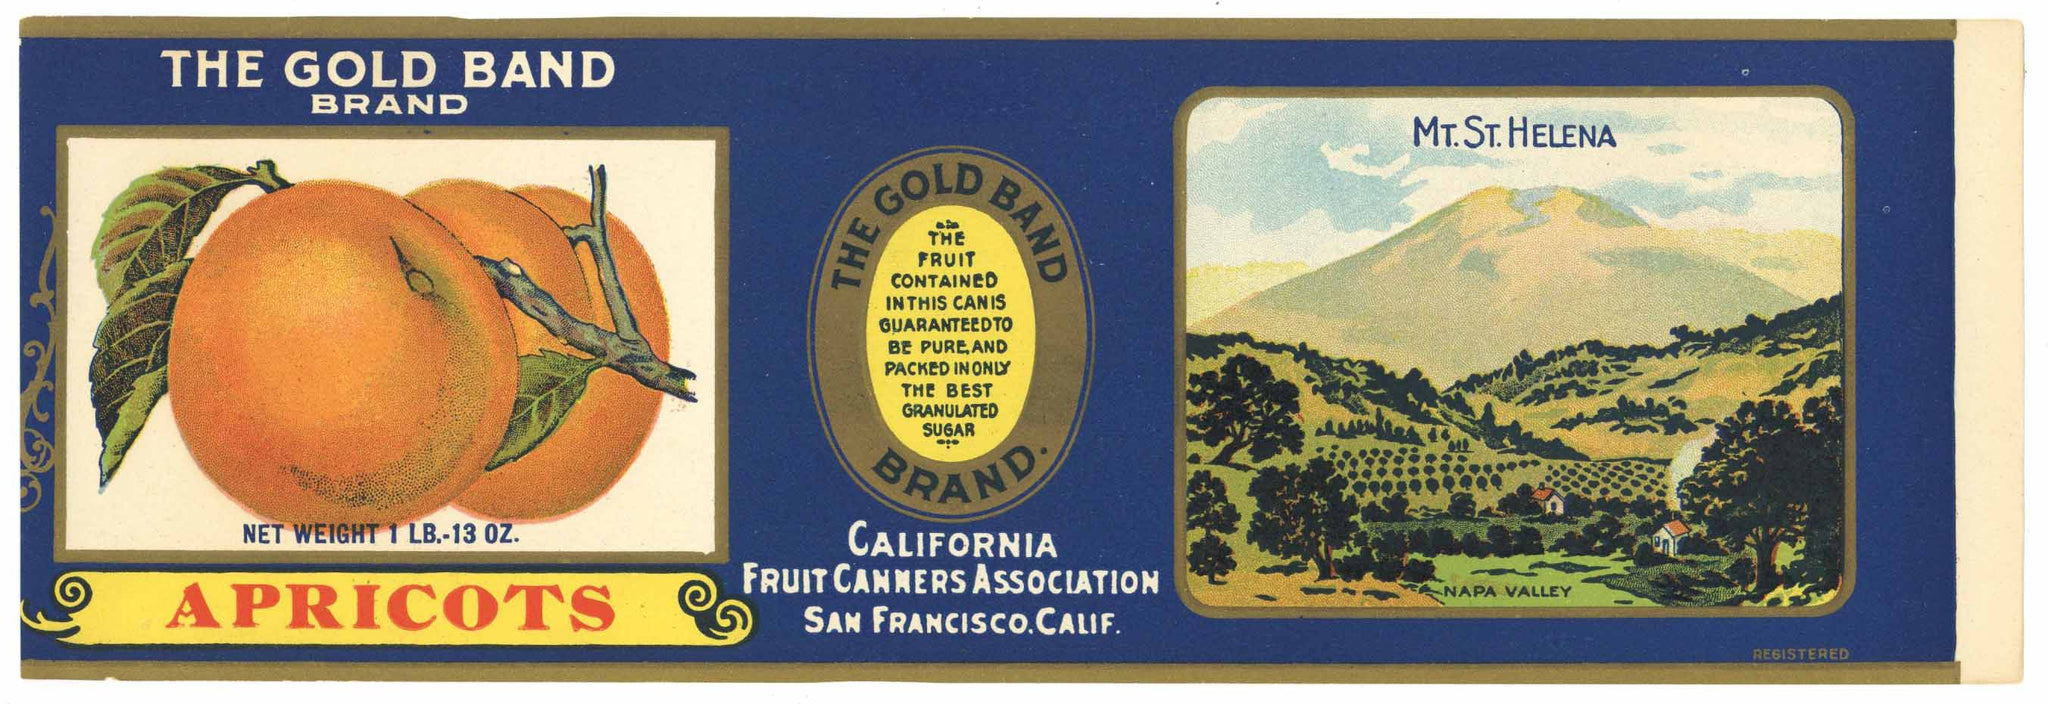 The Gold Band Brand Vintage Napa Valley Apricot Can Label